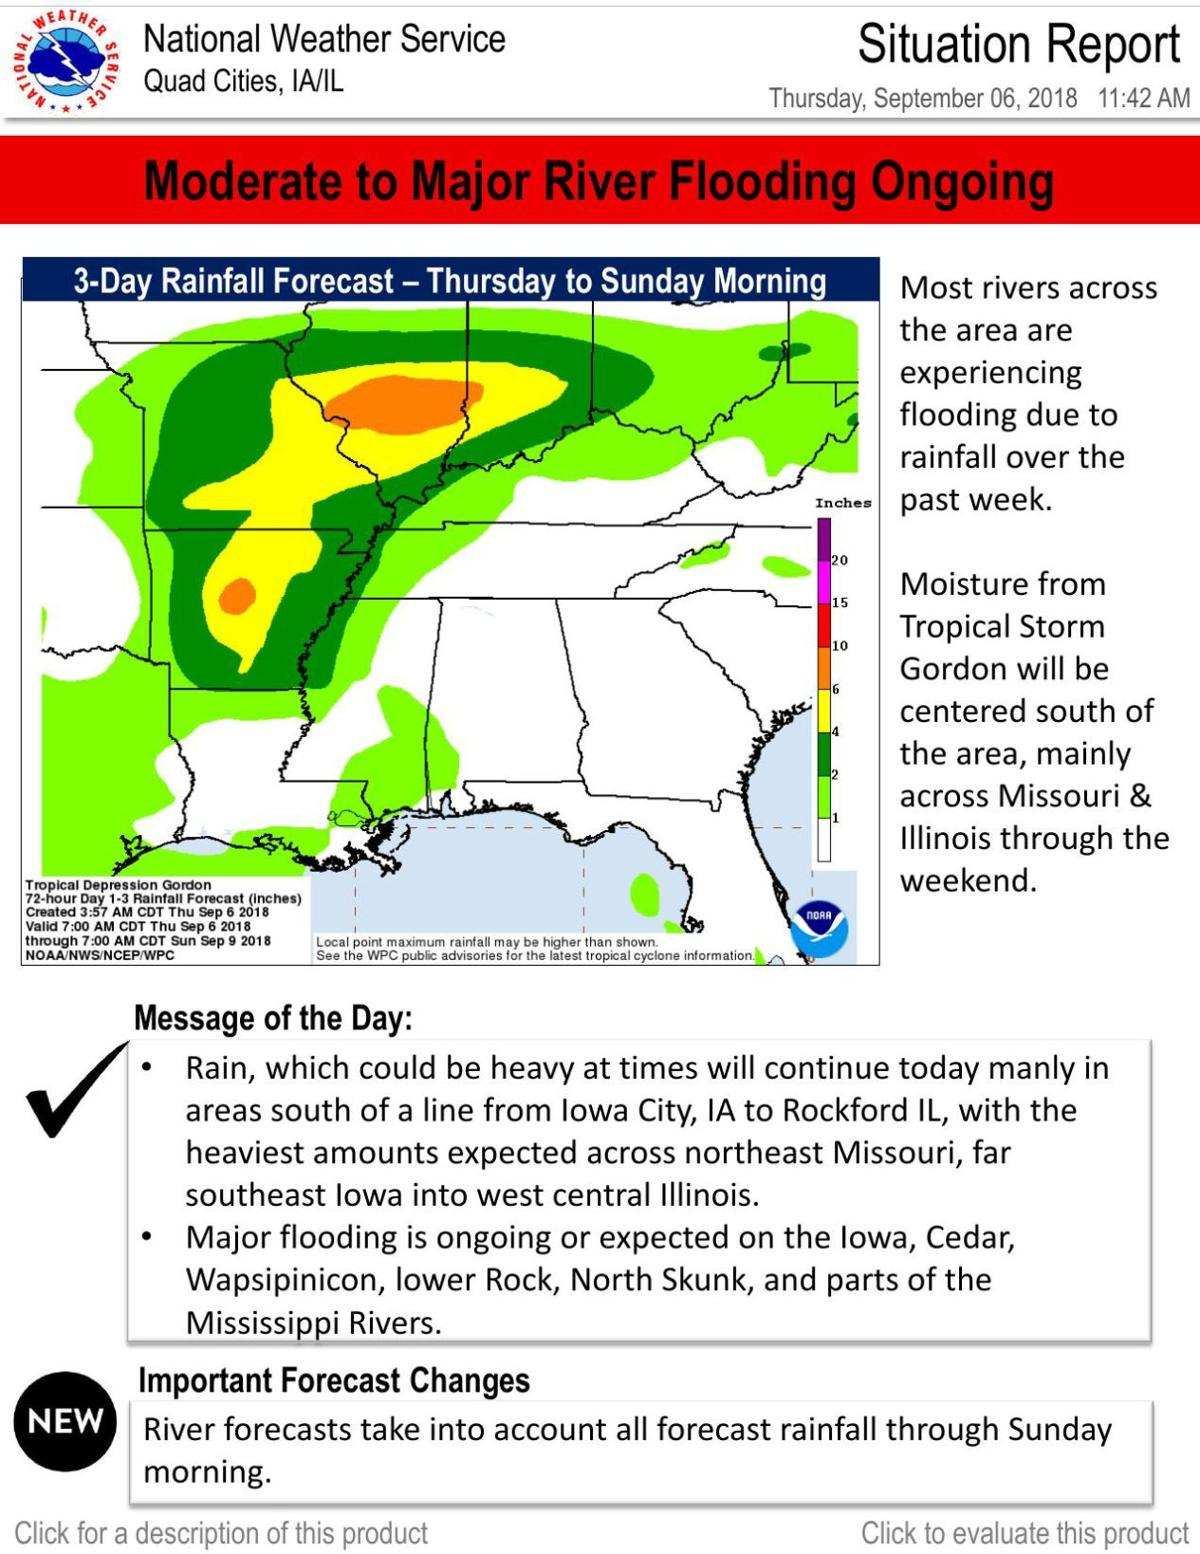 LATEST situation report from the NWS